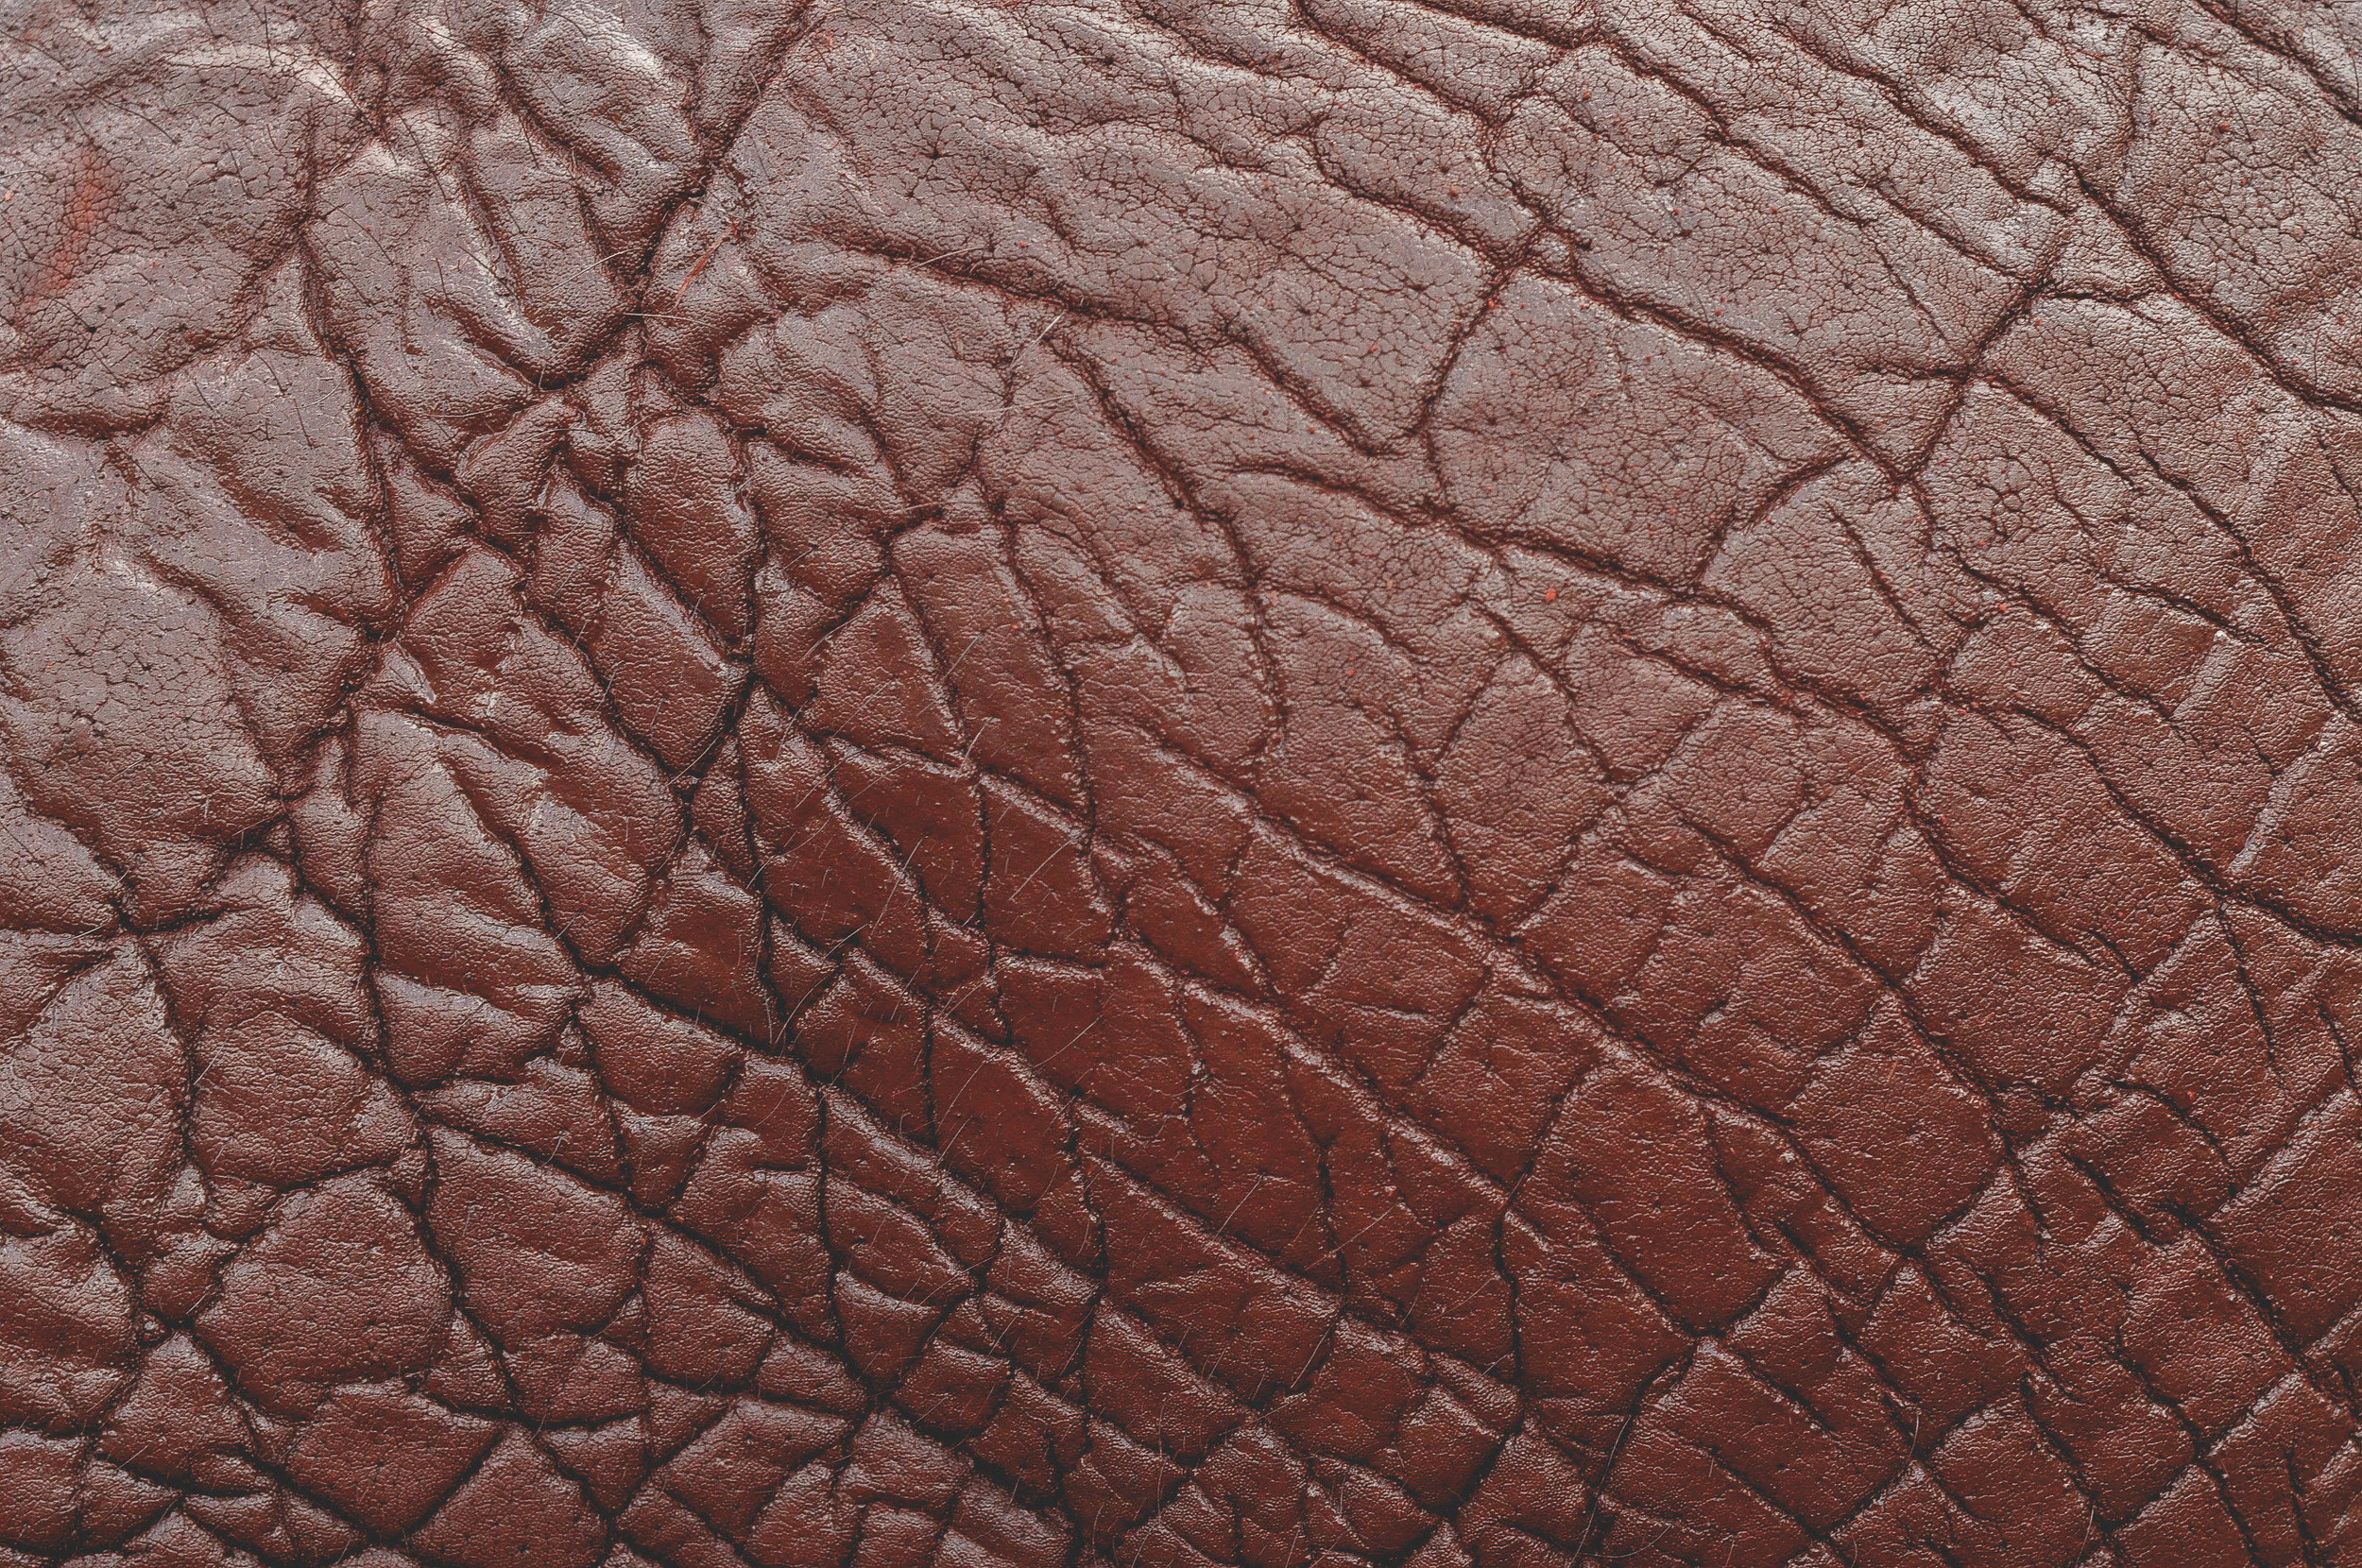 elephant skin low res.jpg